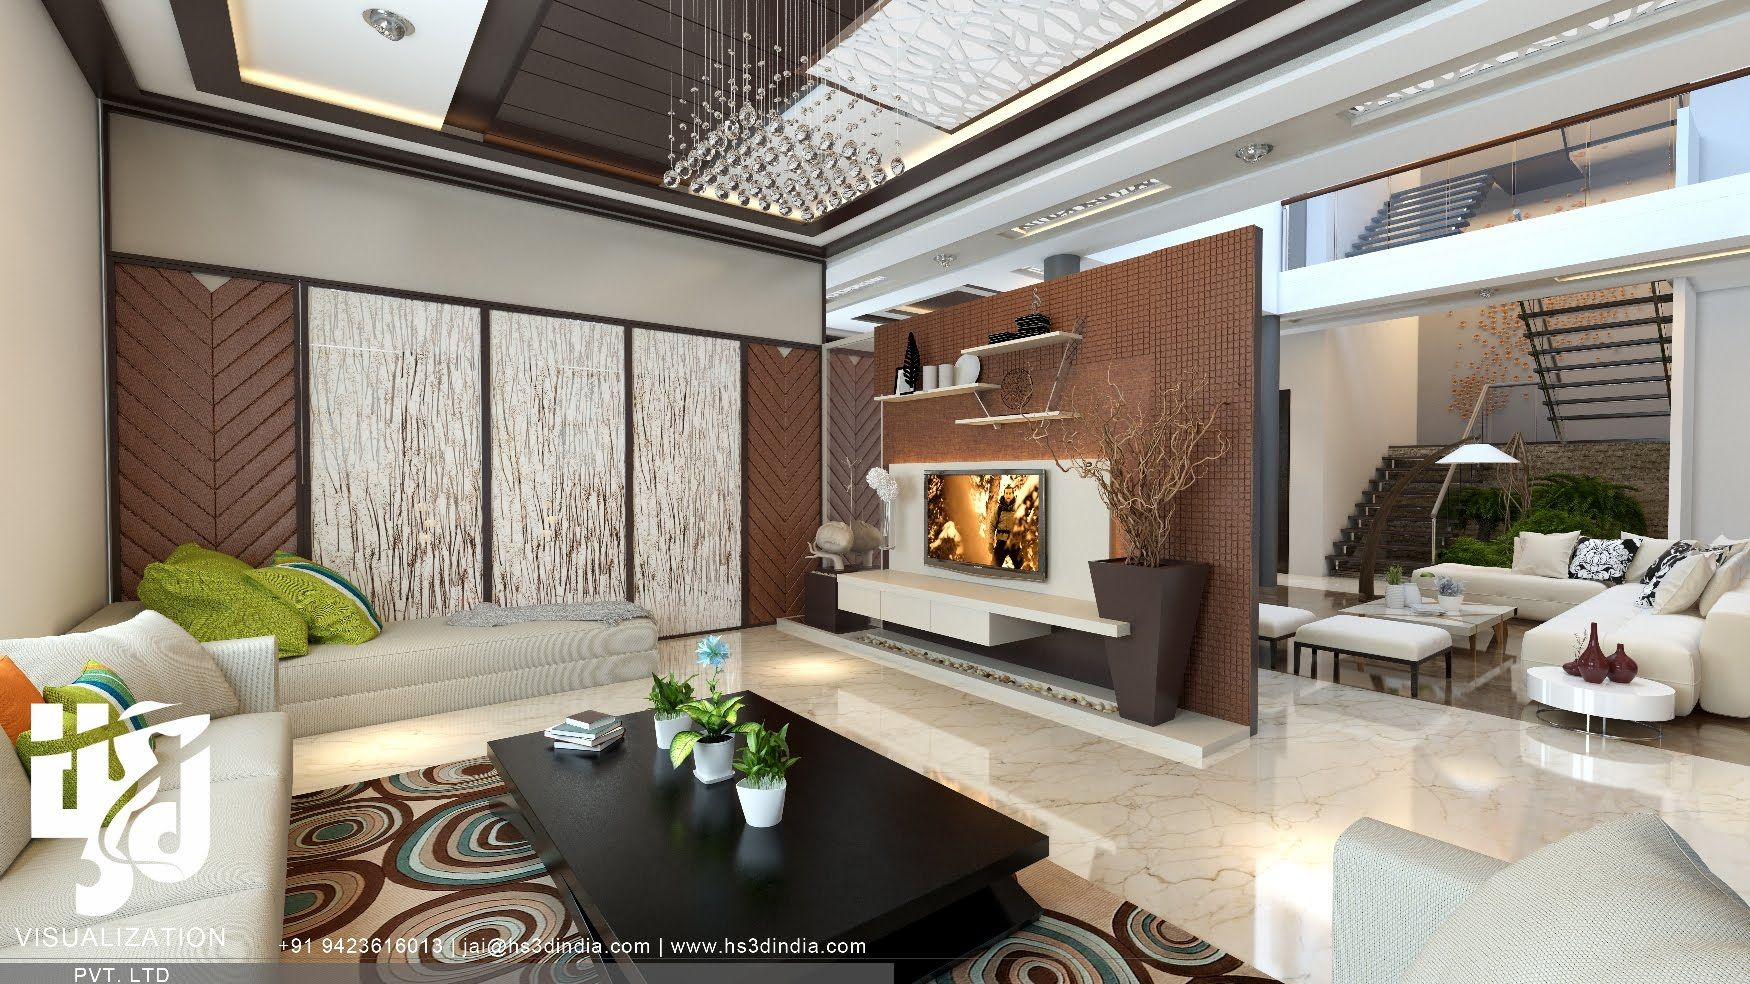 Luxurious Villa 3d Interior Walkthrough Animation By Hs 3d India Residential Interior Design Residential Interior Design